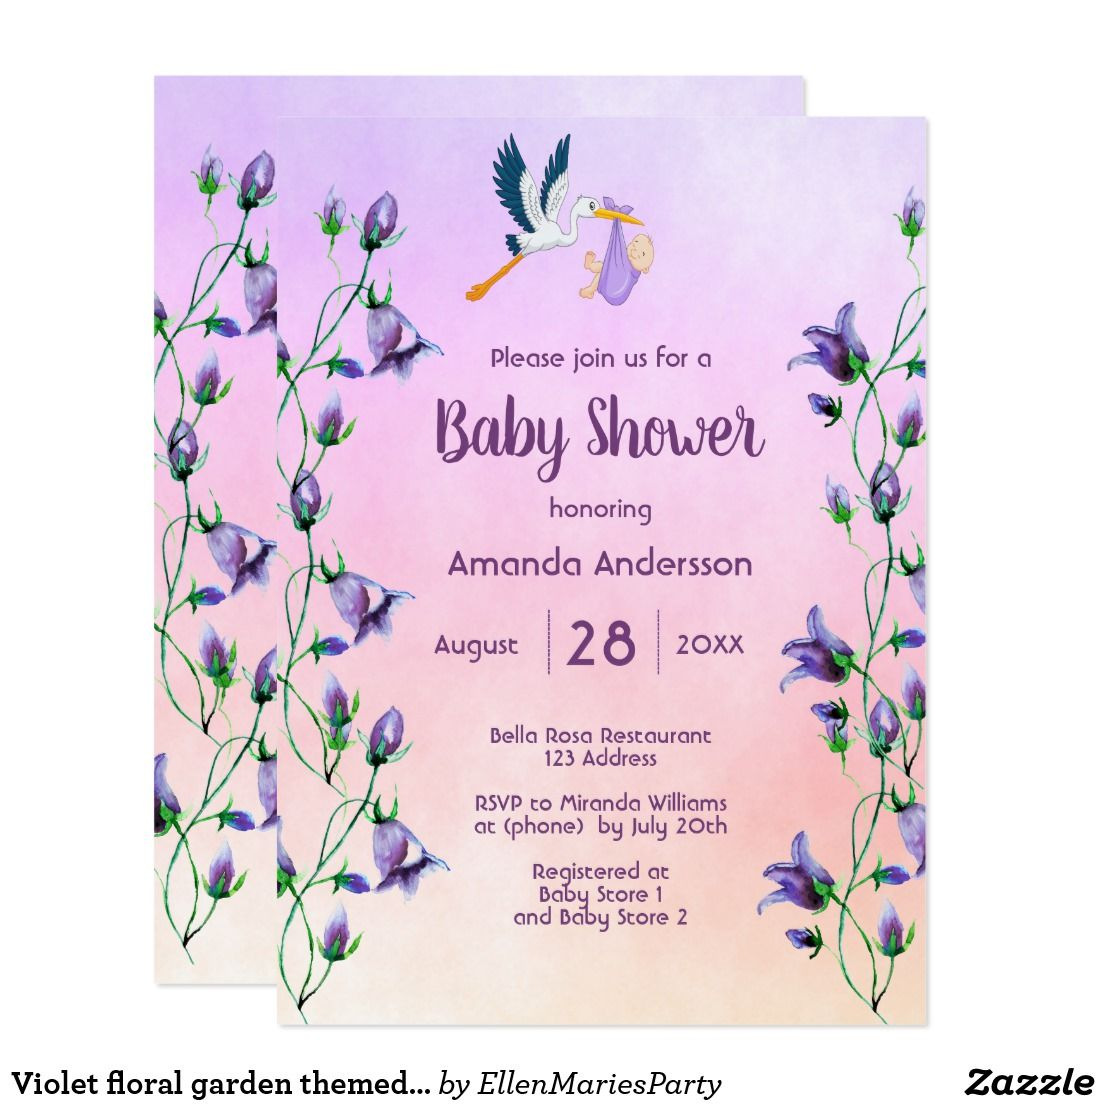 Baby Shower Invitation Letter Amazing Violet Floral Garden Themed Baby Shower Invitation  Babies And Baby .